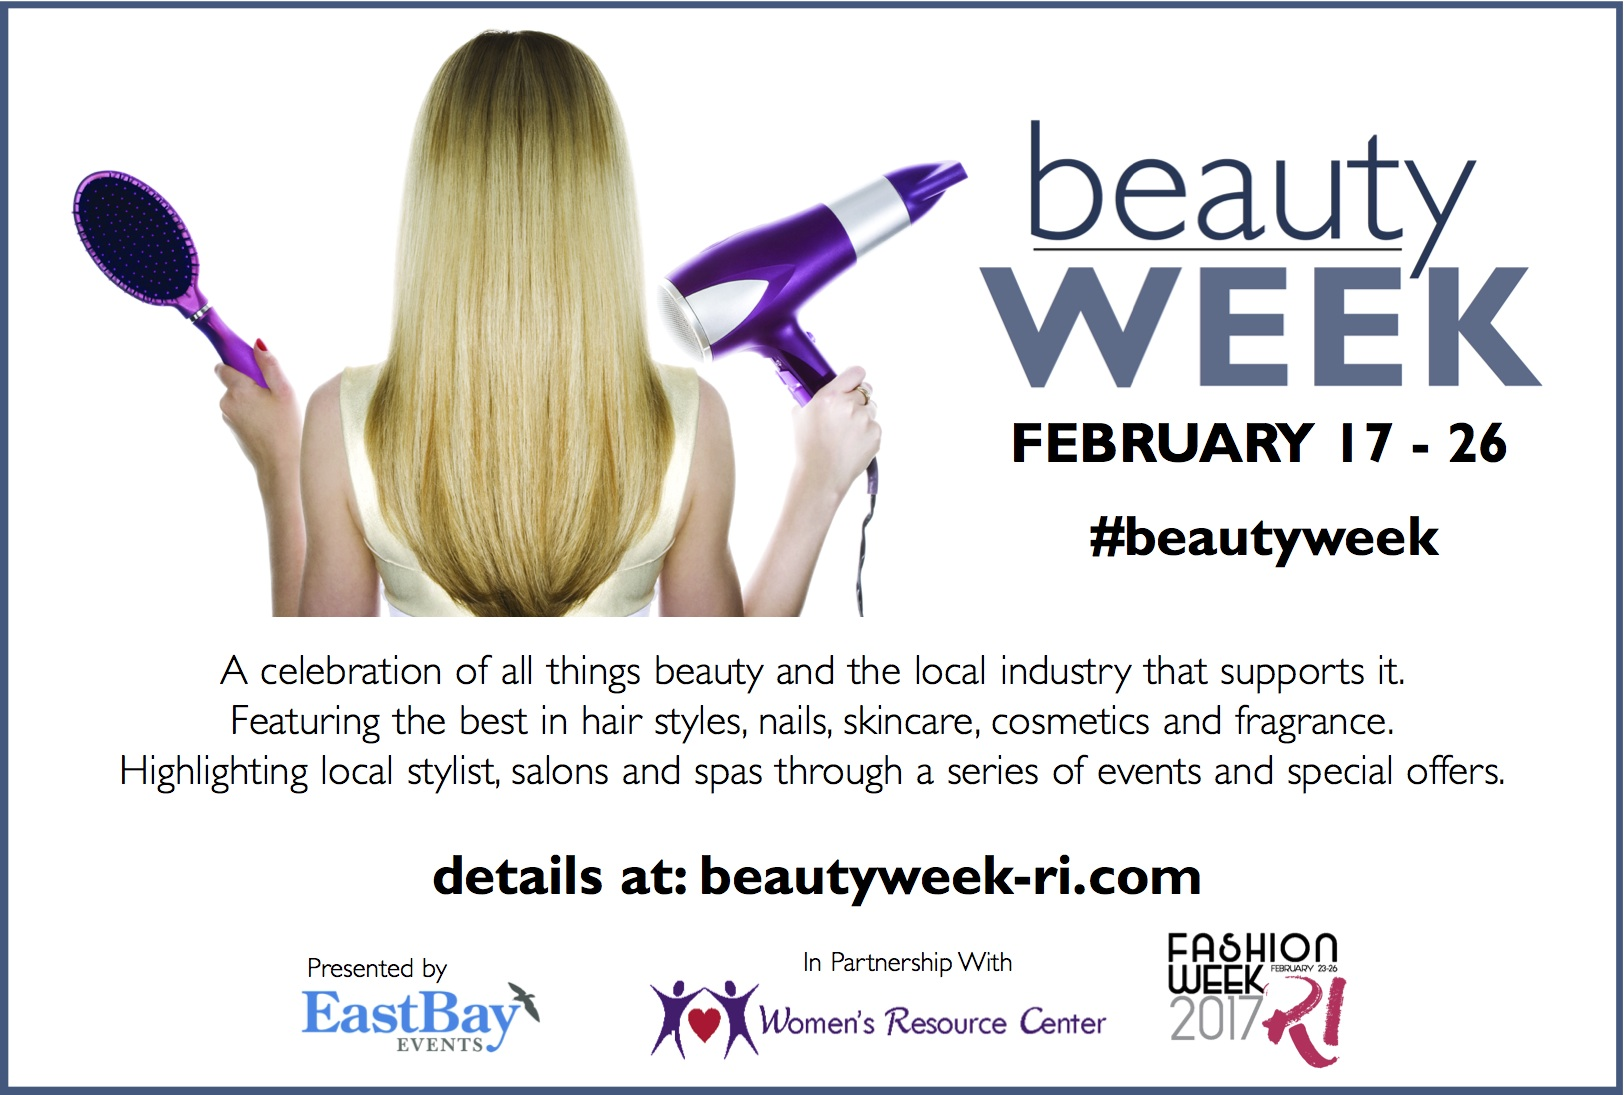 Join Us For A Week Of Indulgence And Pampering